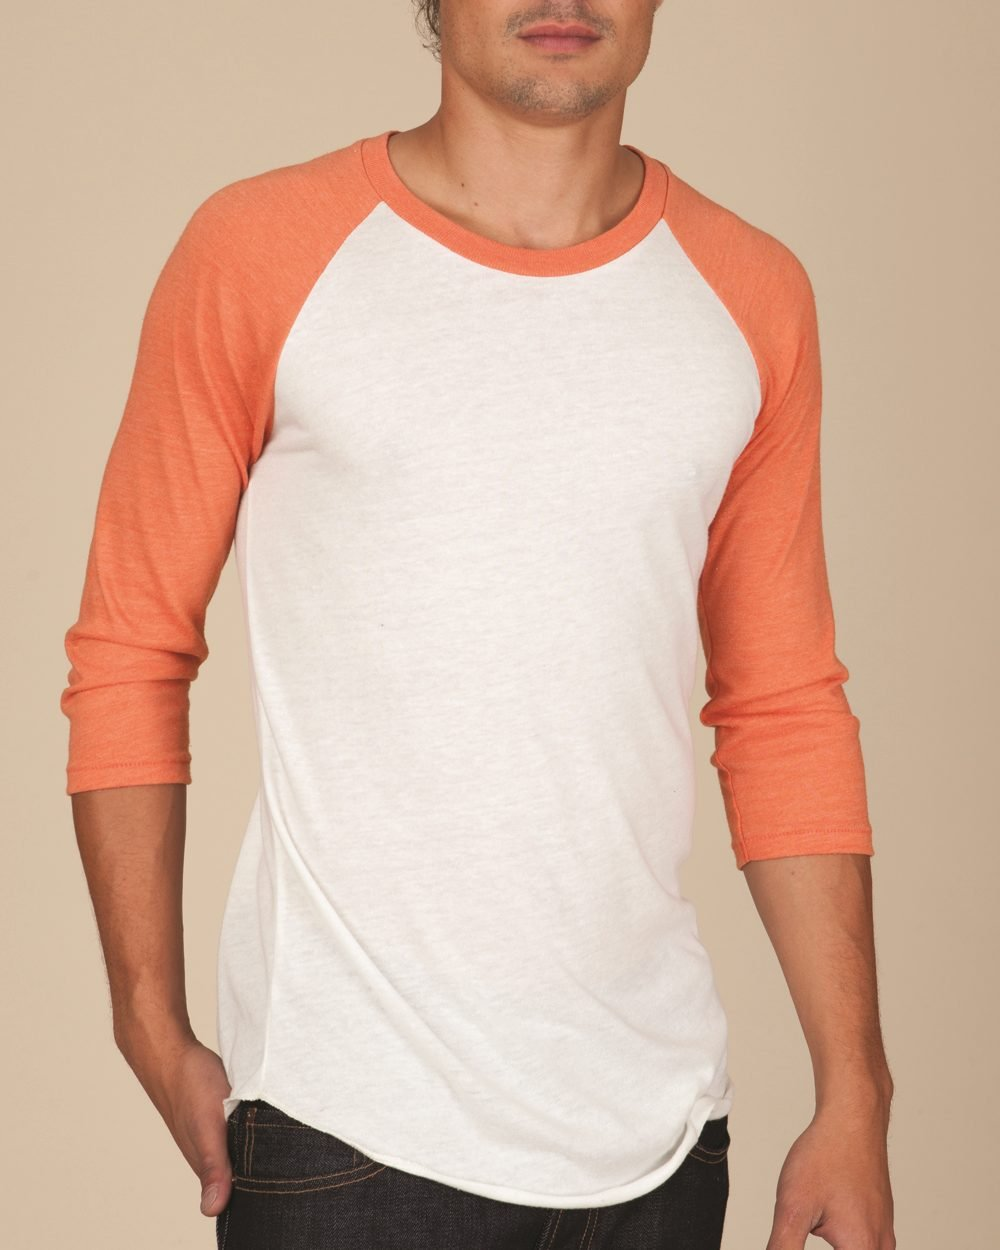 Men's T-Shirts - Get great style and comfort in all our men's t-shirts, from cotton-rich jersey t-shirts to our famous Champion logo t-shirts. You'll always find a selection of the latest colors and graphics, as well as your favorite classic colors.